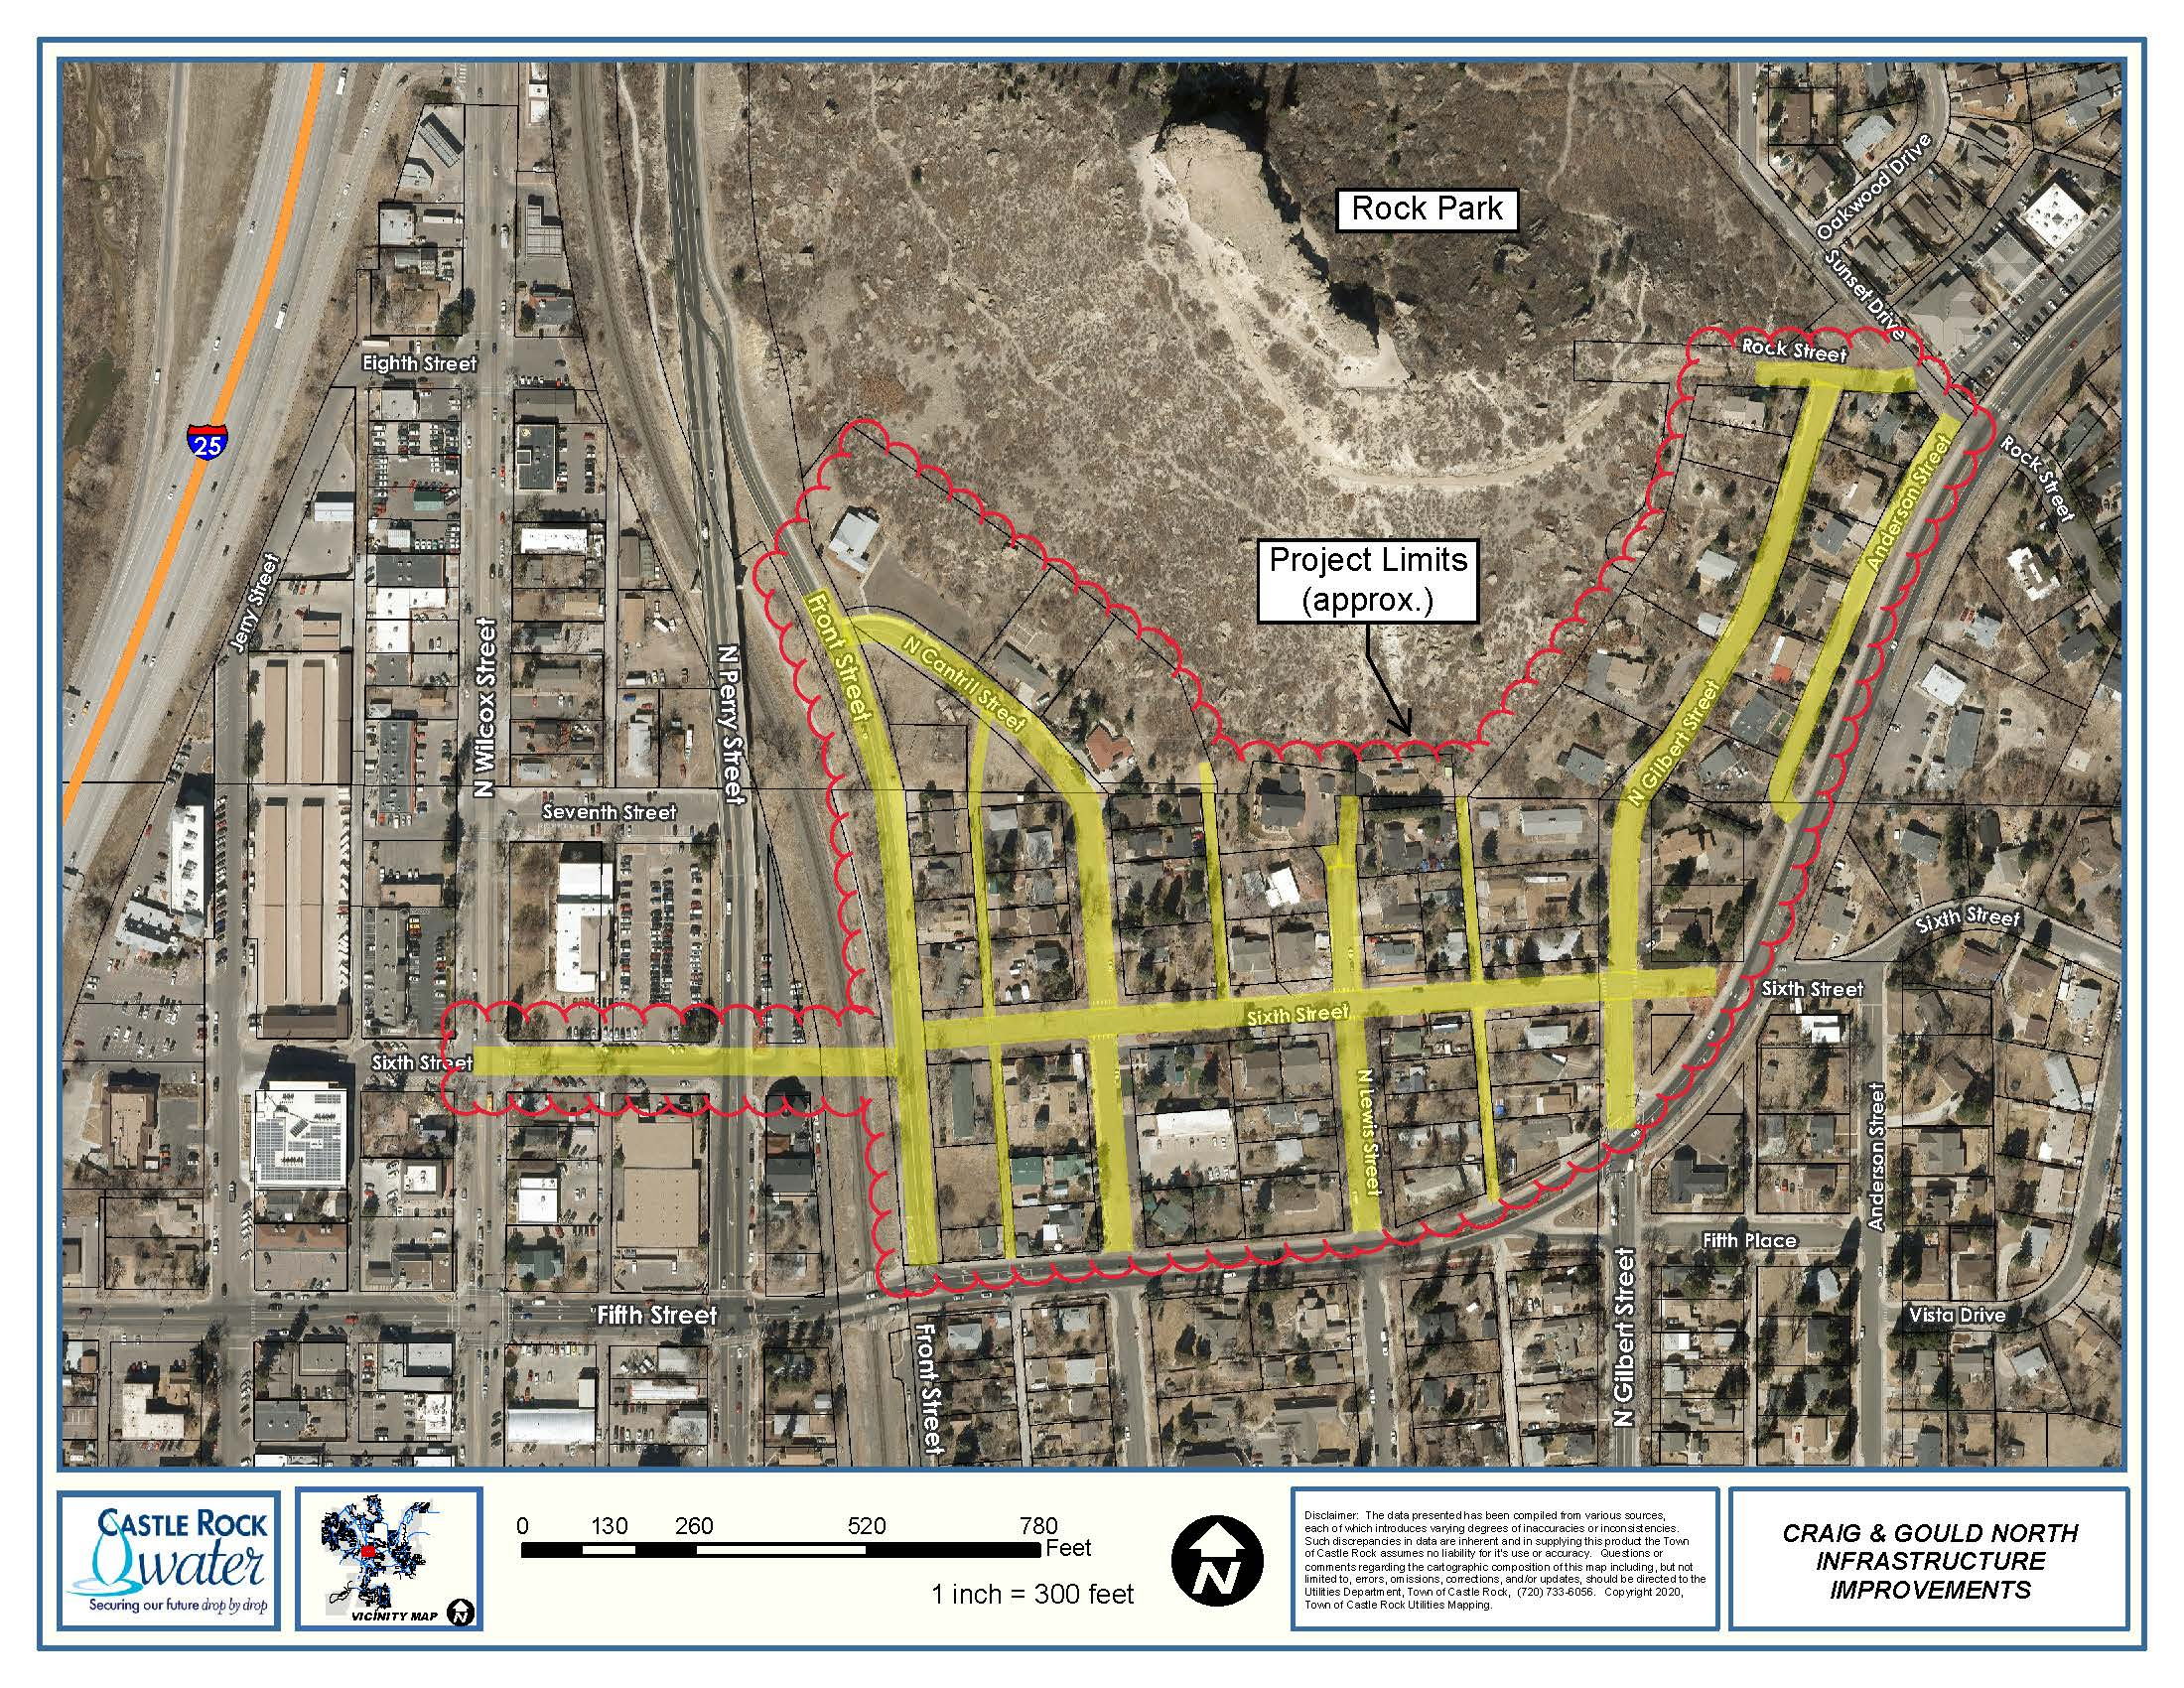 Craig & Gould stormwater project site map